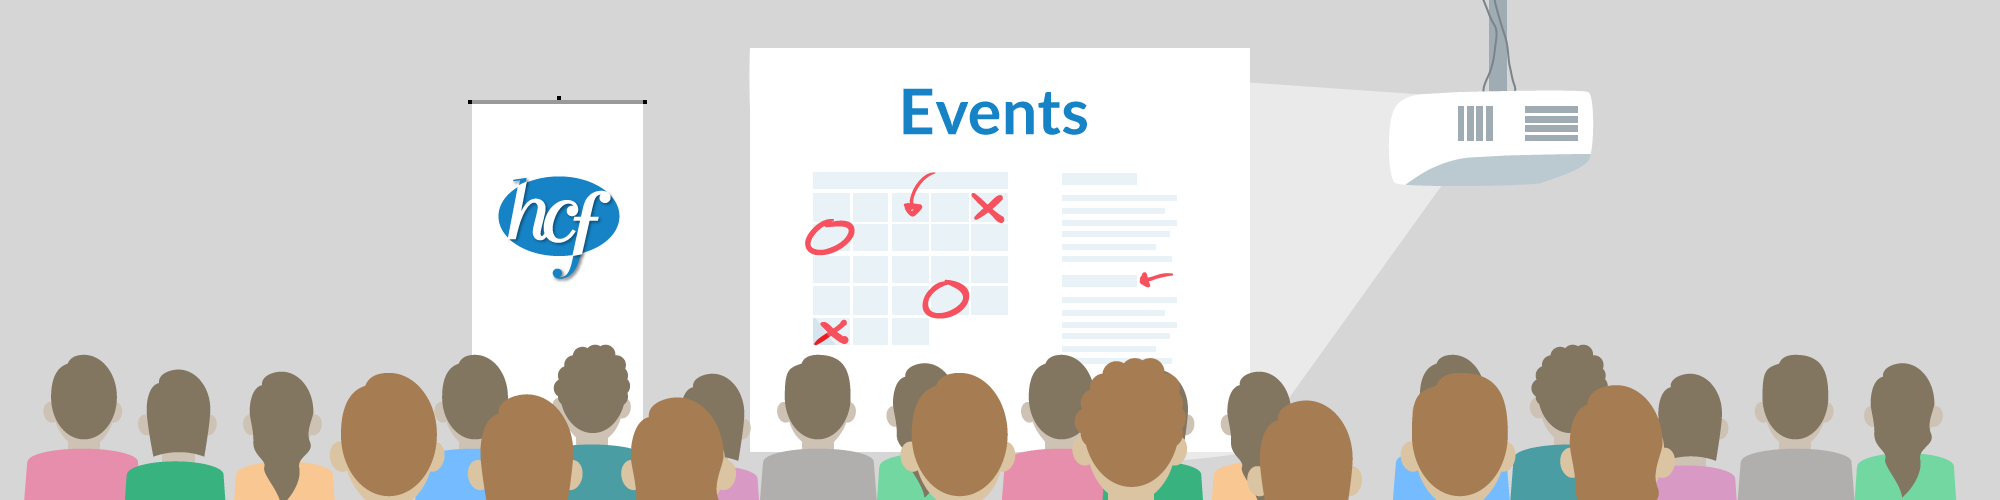 Health Claims Forum Events